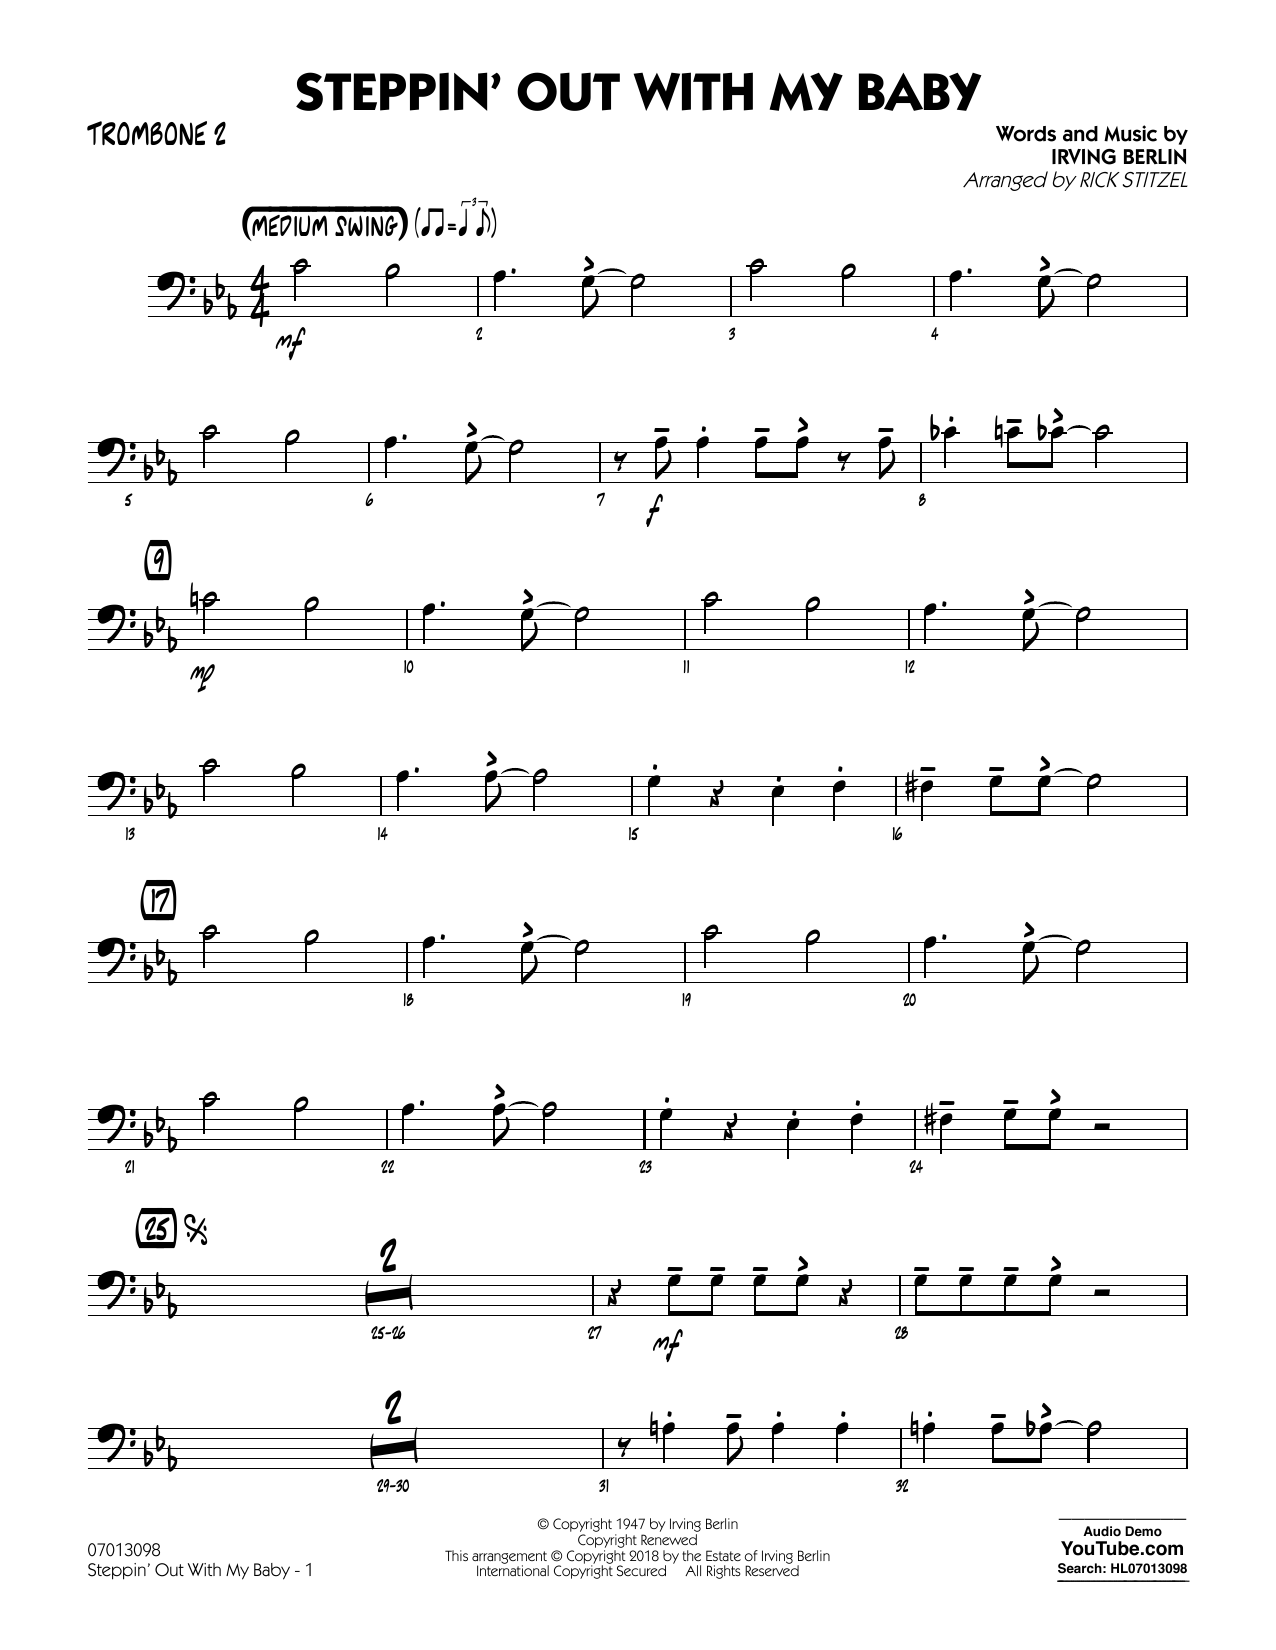 Rick Stitzel Steppin' Out with My Baby - Trombone 2 sheet music notes and chords. Download Printable PDF.